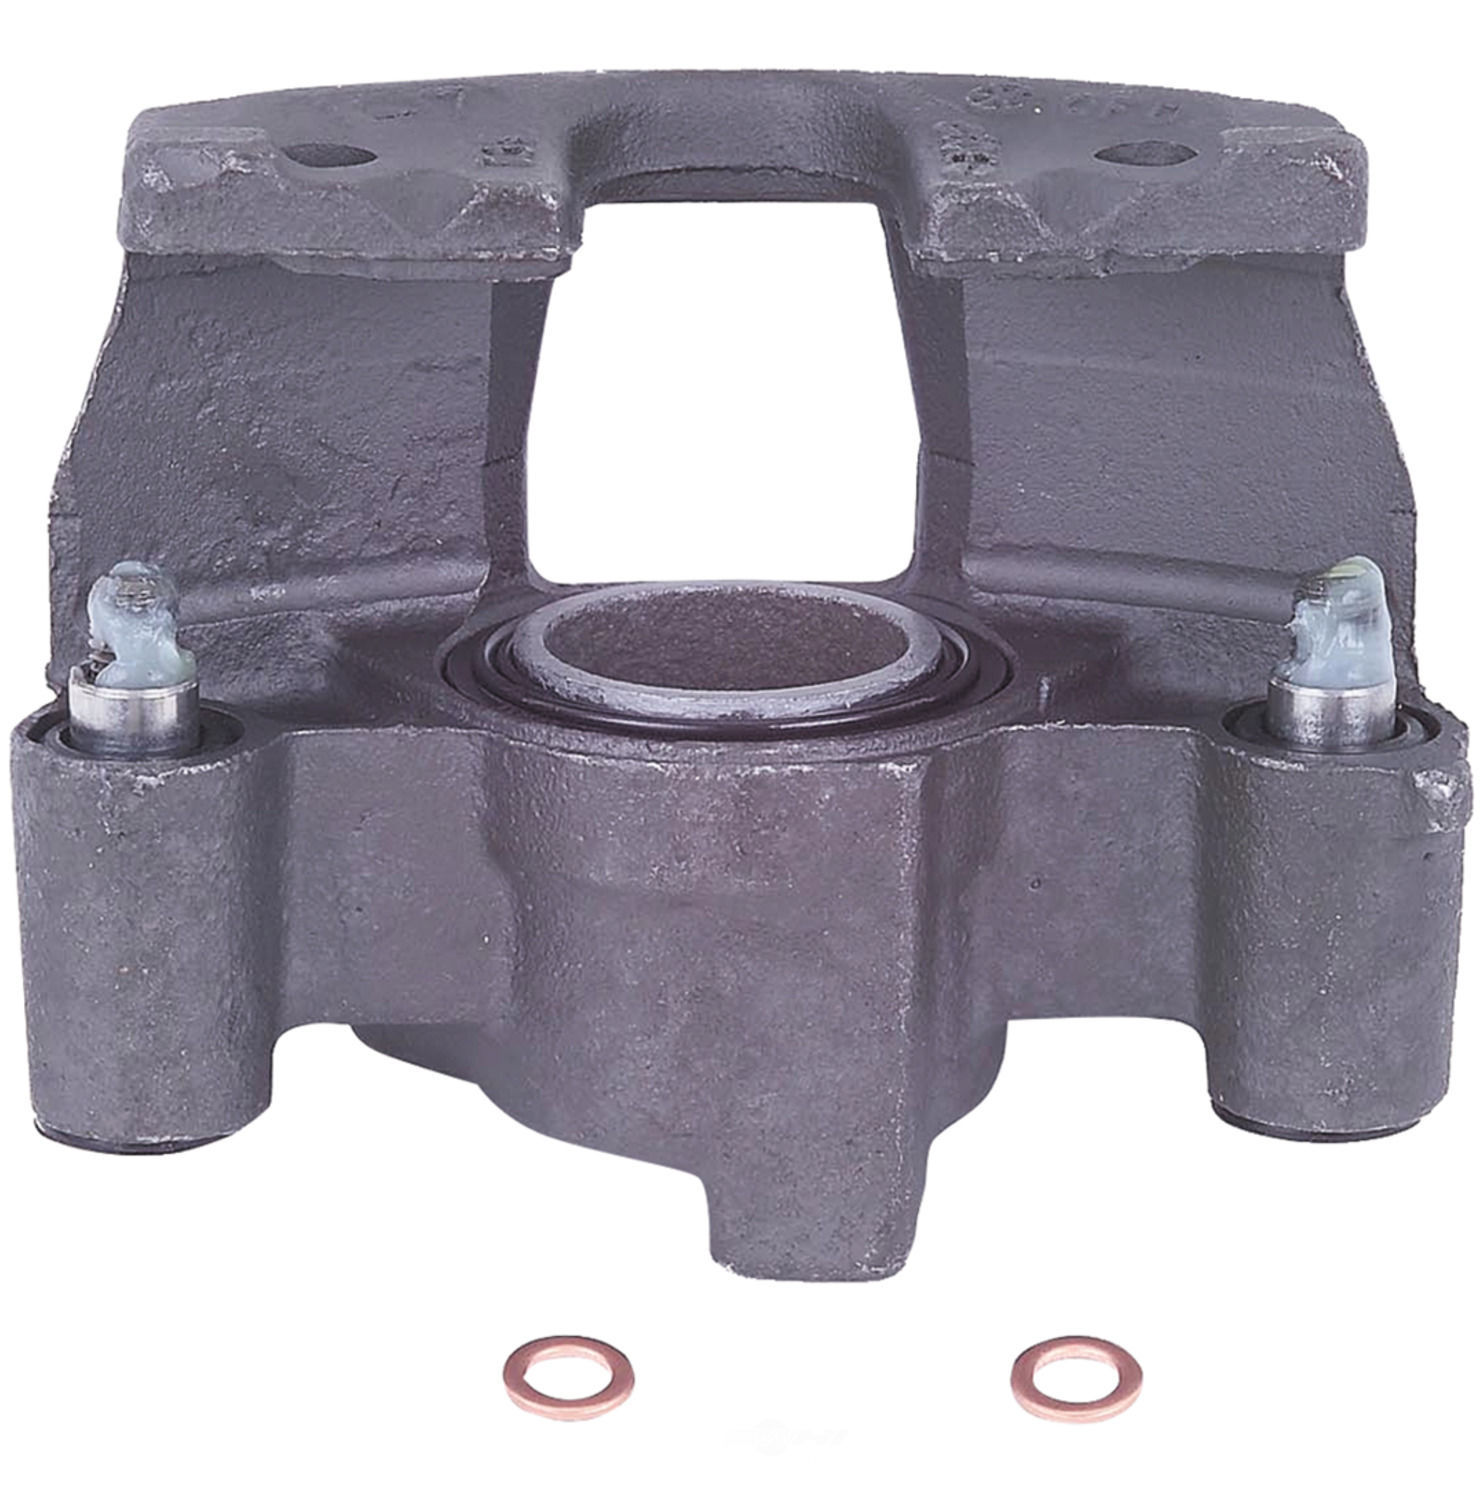 PRONTO/CARDONE - Remanufactured Friction Choice Caliper - PNX 18-4357